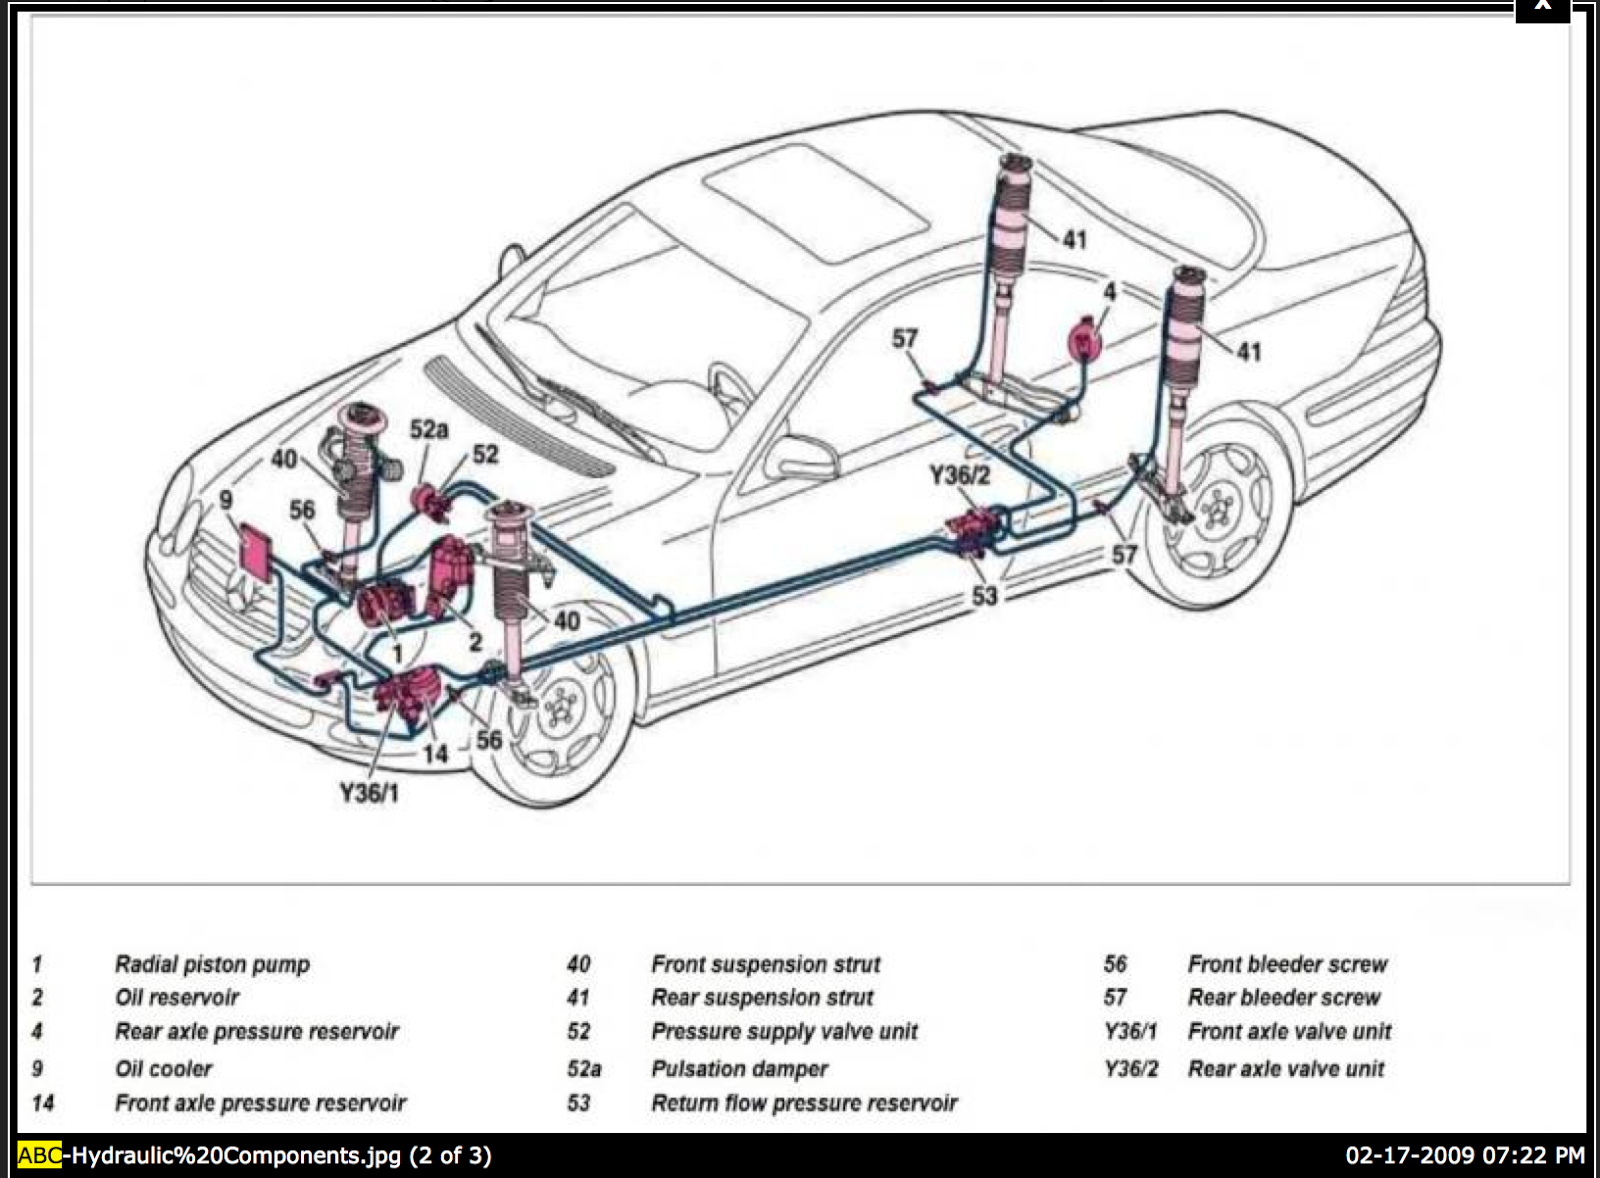 2000 mb e320 engine diagram wiring diagram paper 2000 mercedes s500 engine diagram [ 1600 x 1178 Pixel ]